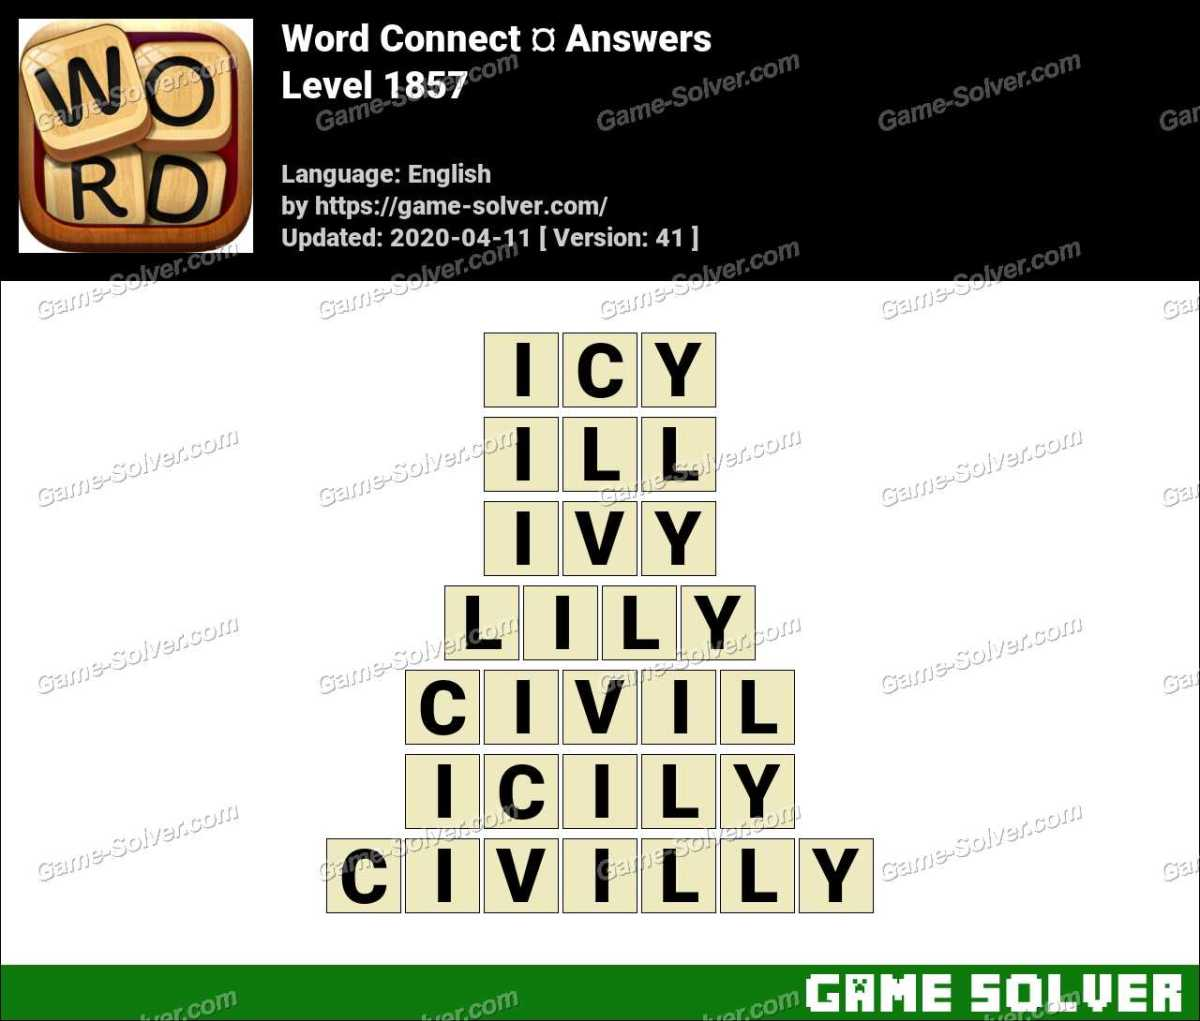 Word Connect Level 1857 Answers